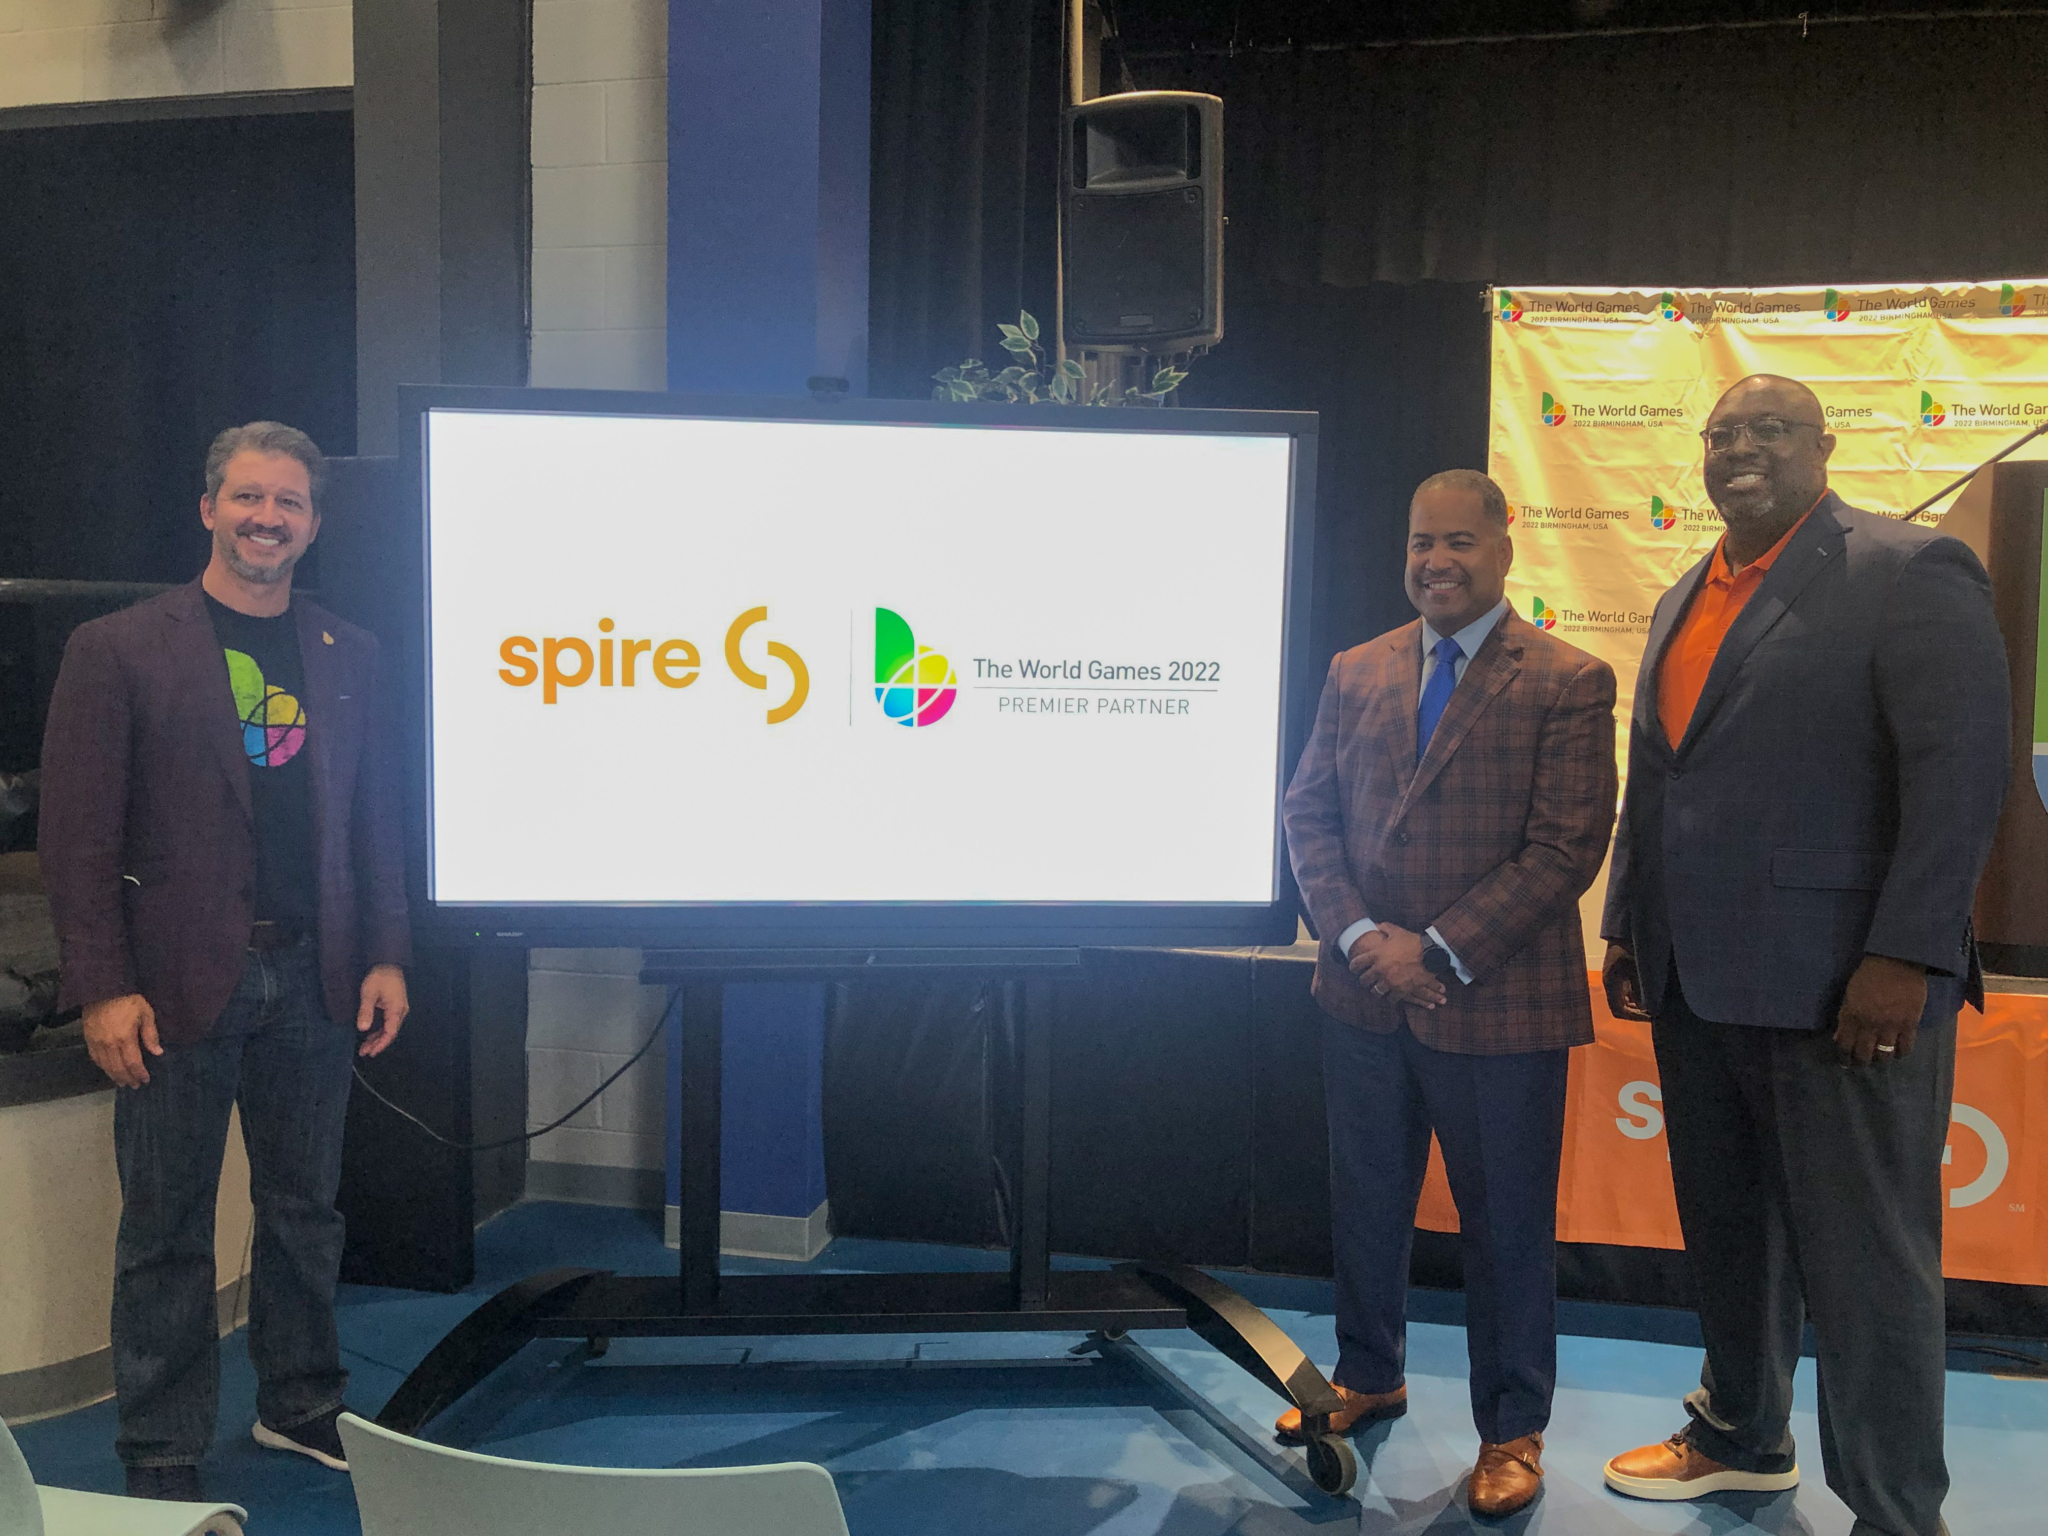 Learn about the Spire '10,000 Reasons Why' Initiative at The World Games 2022